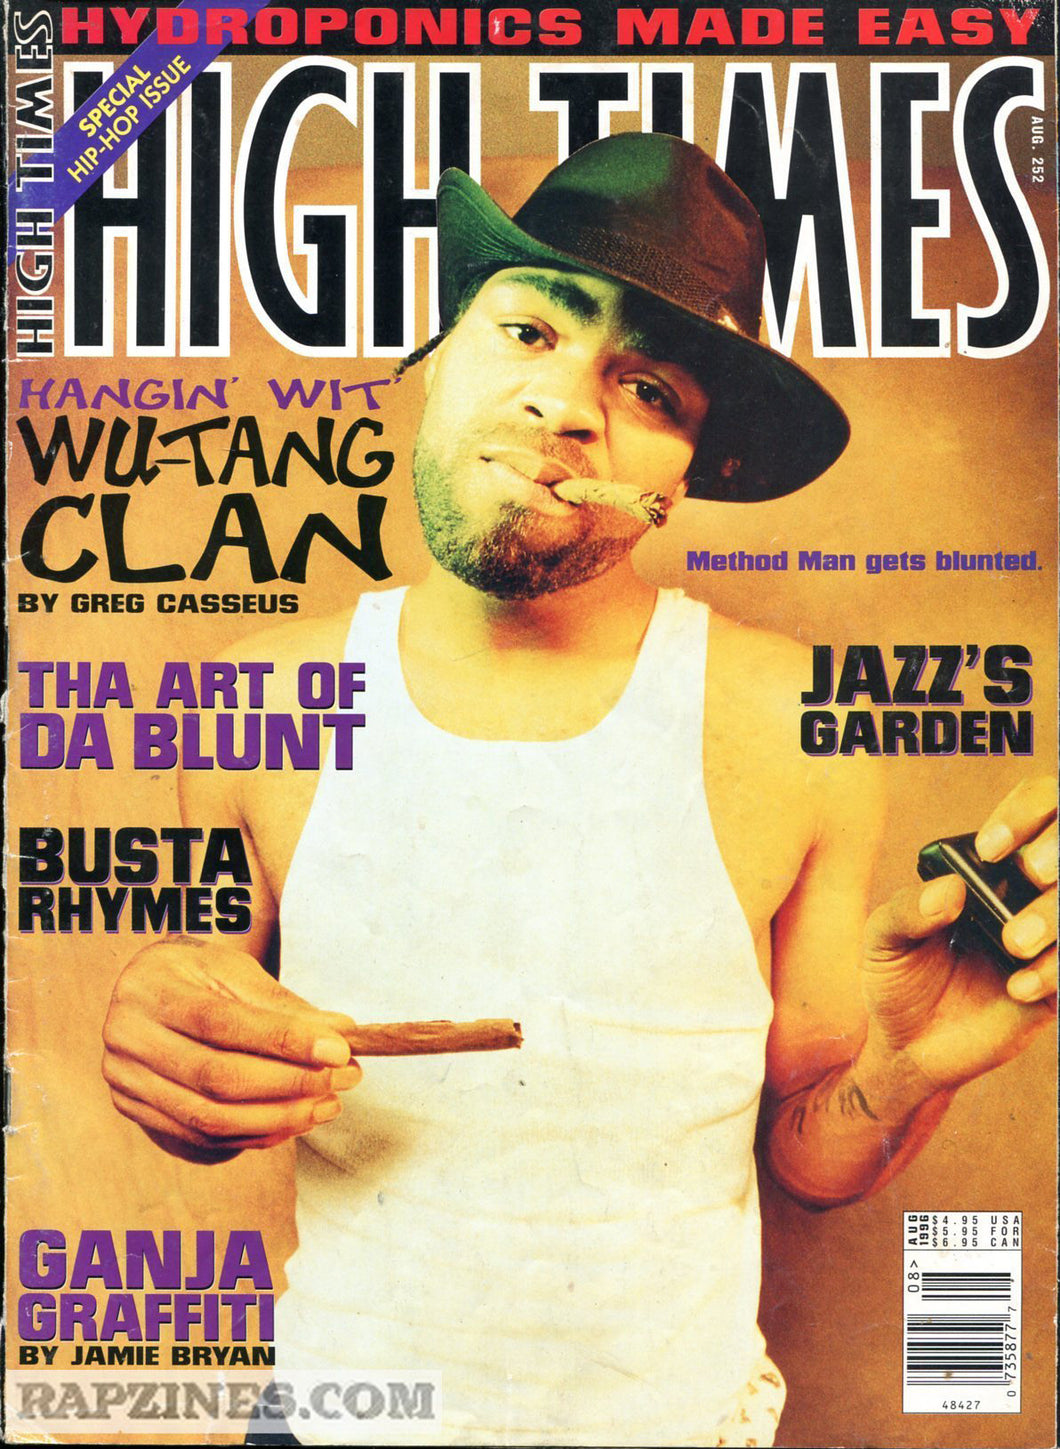 HIGH TIMES Magazine August 1996 - Issue 252